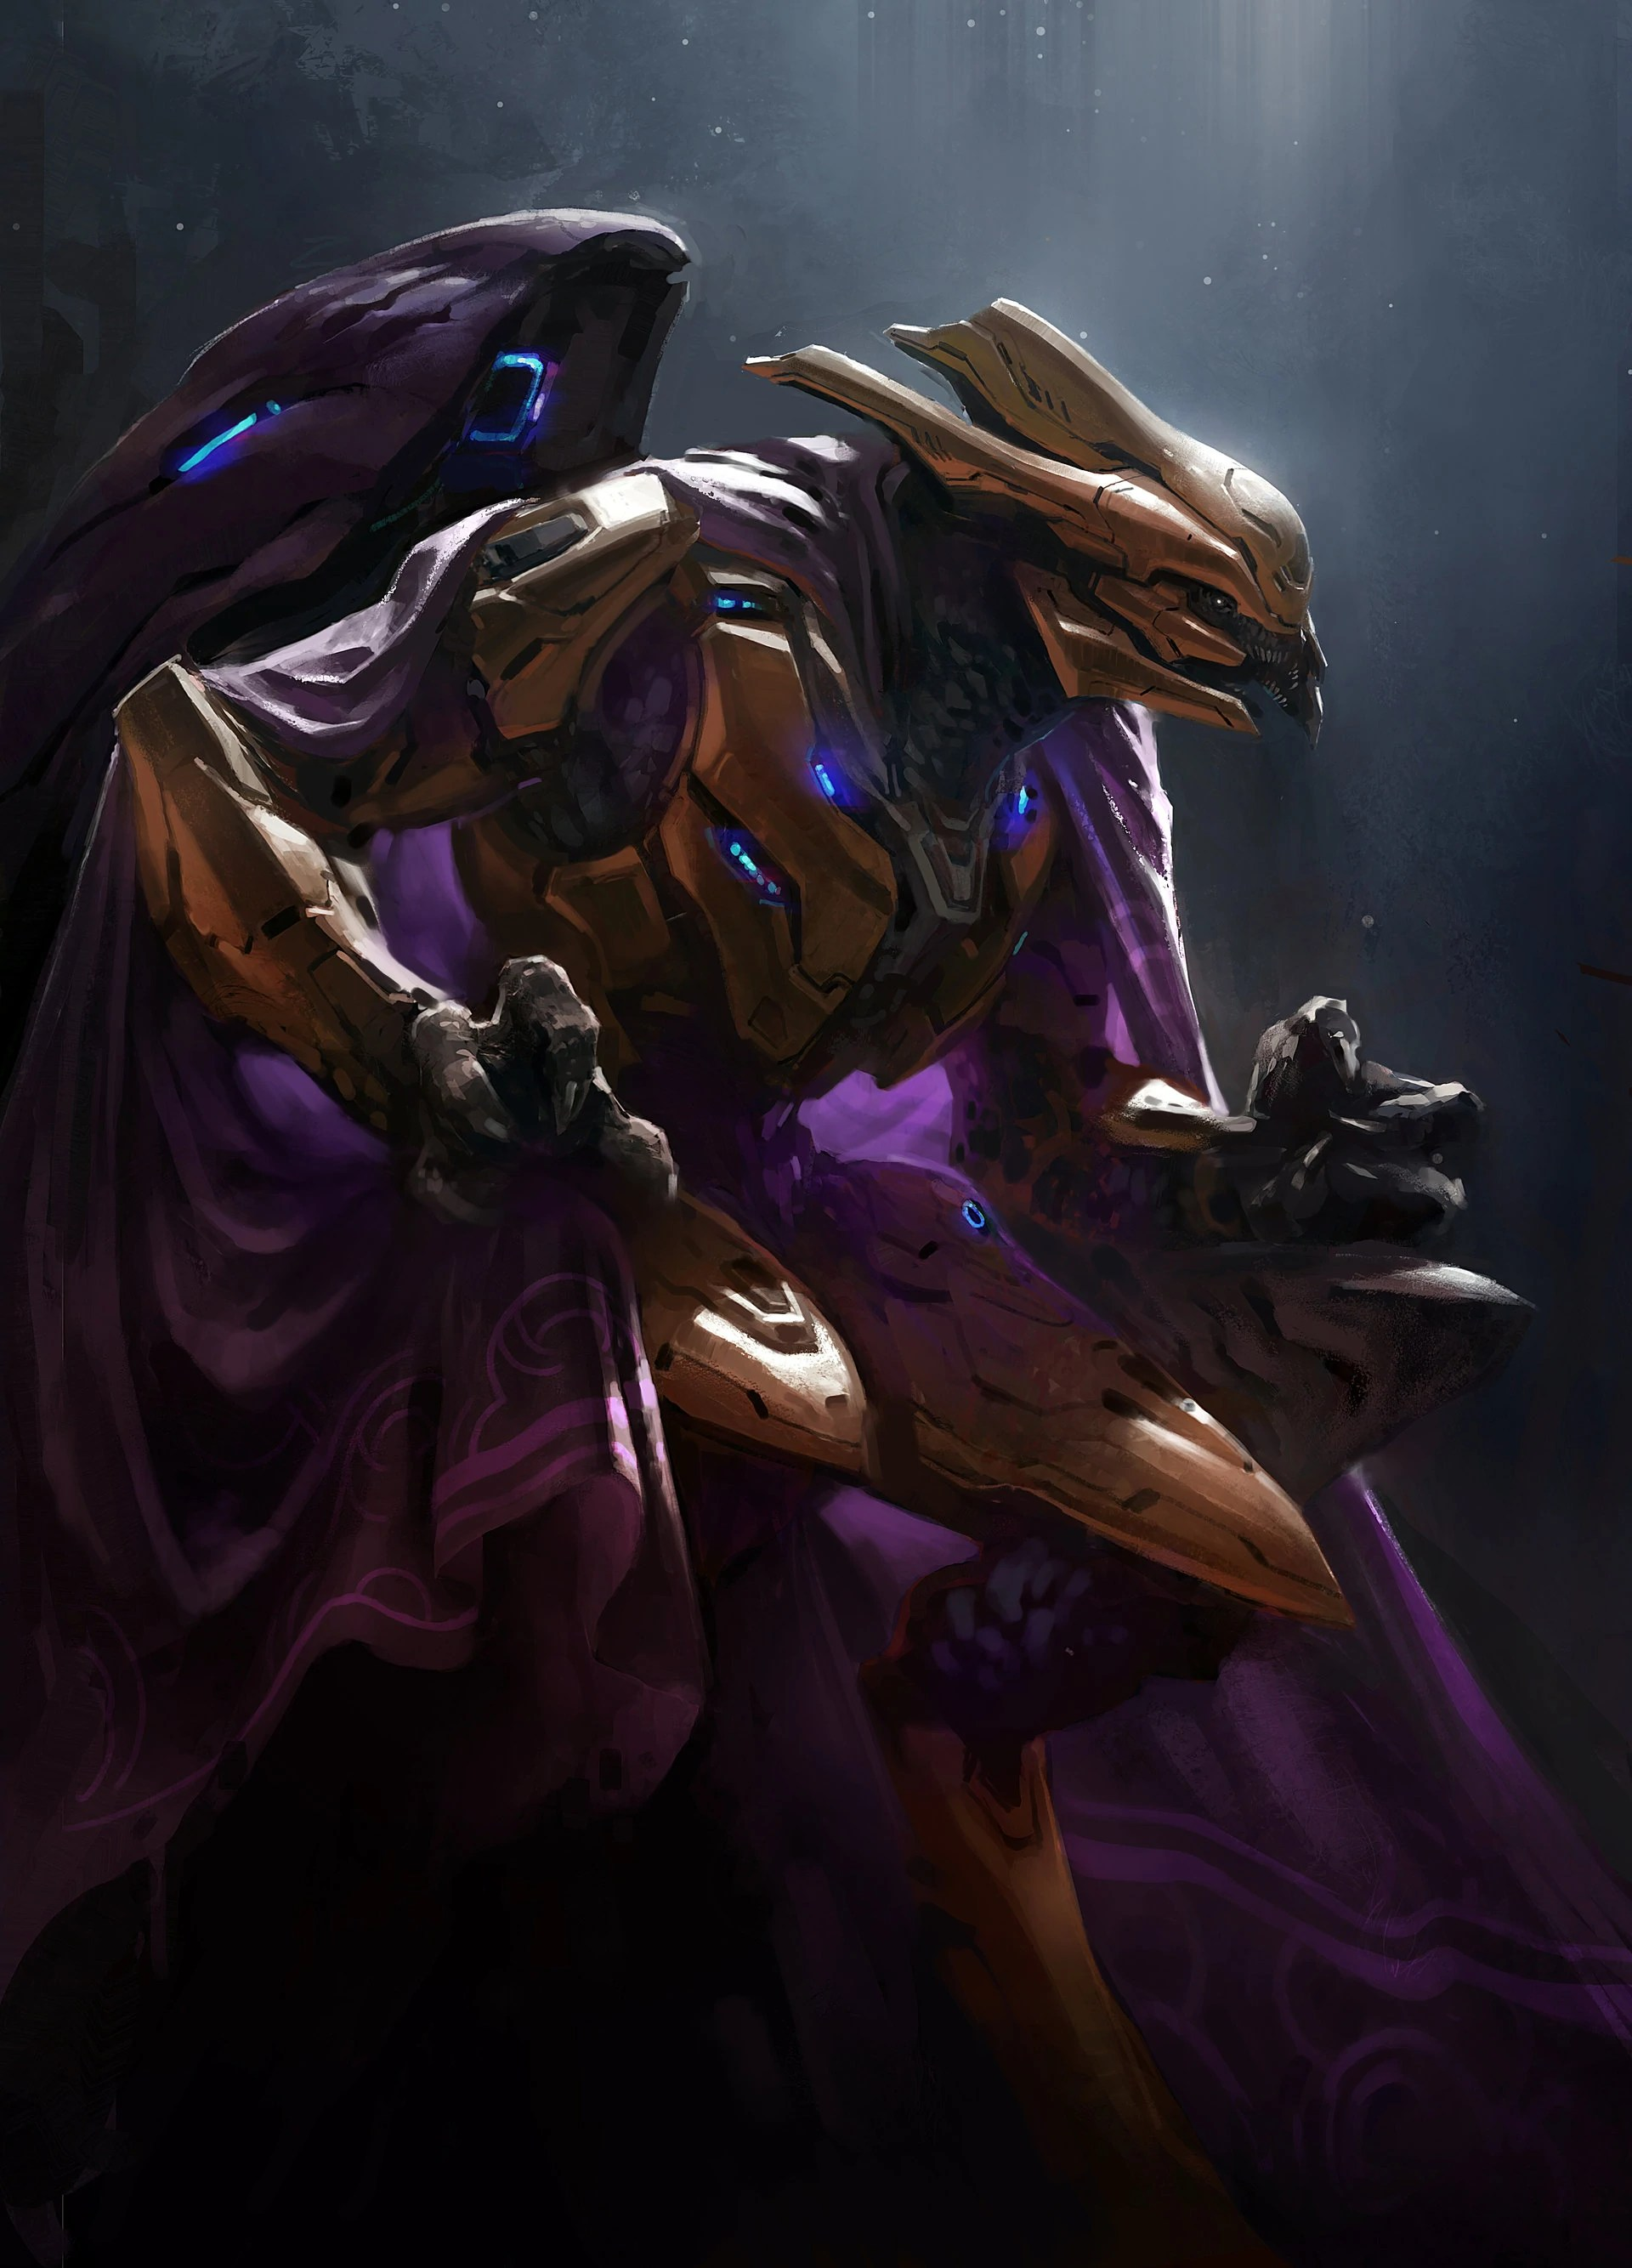 Halo Wallpaper Fall Of Reach Supreme Commander Halo Nation Fandom Powered By Wikia